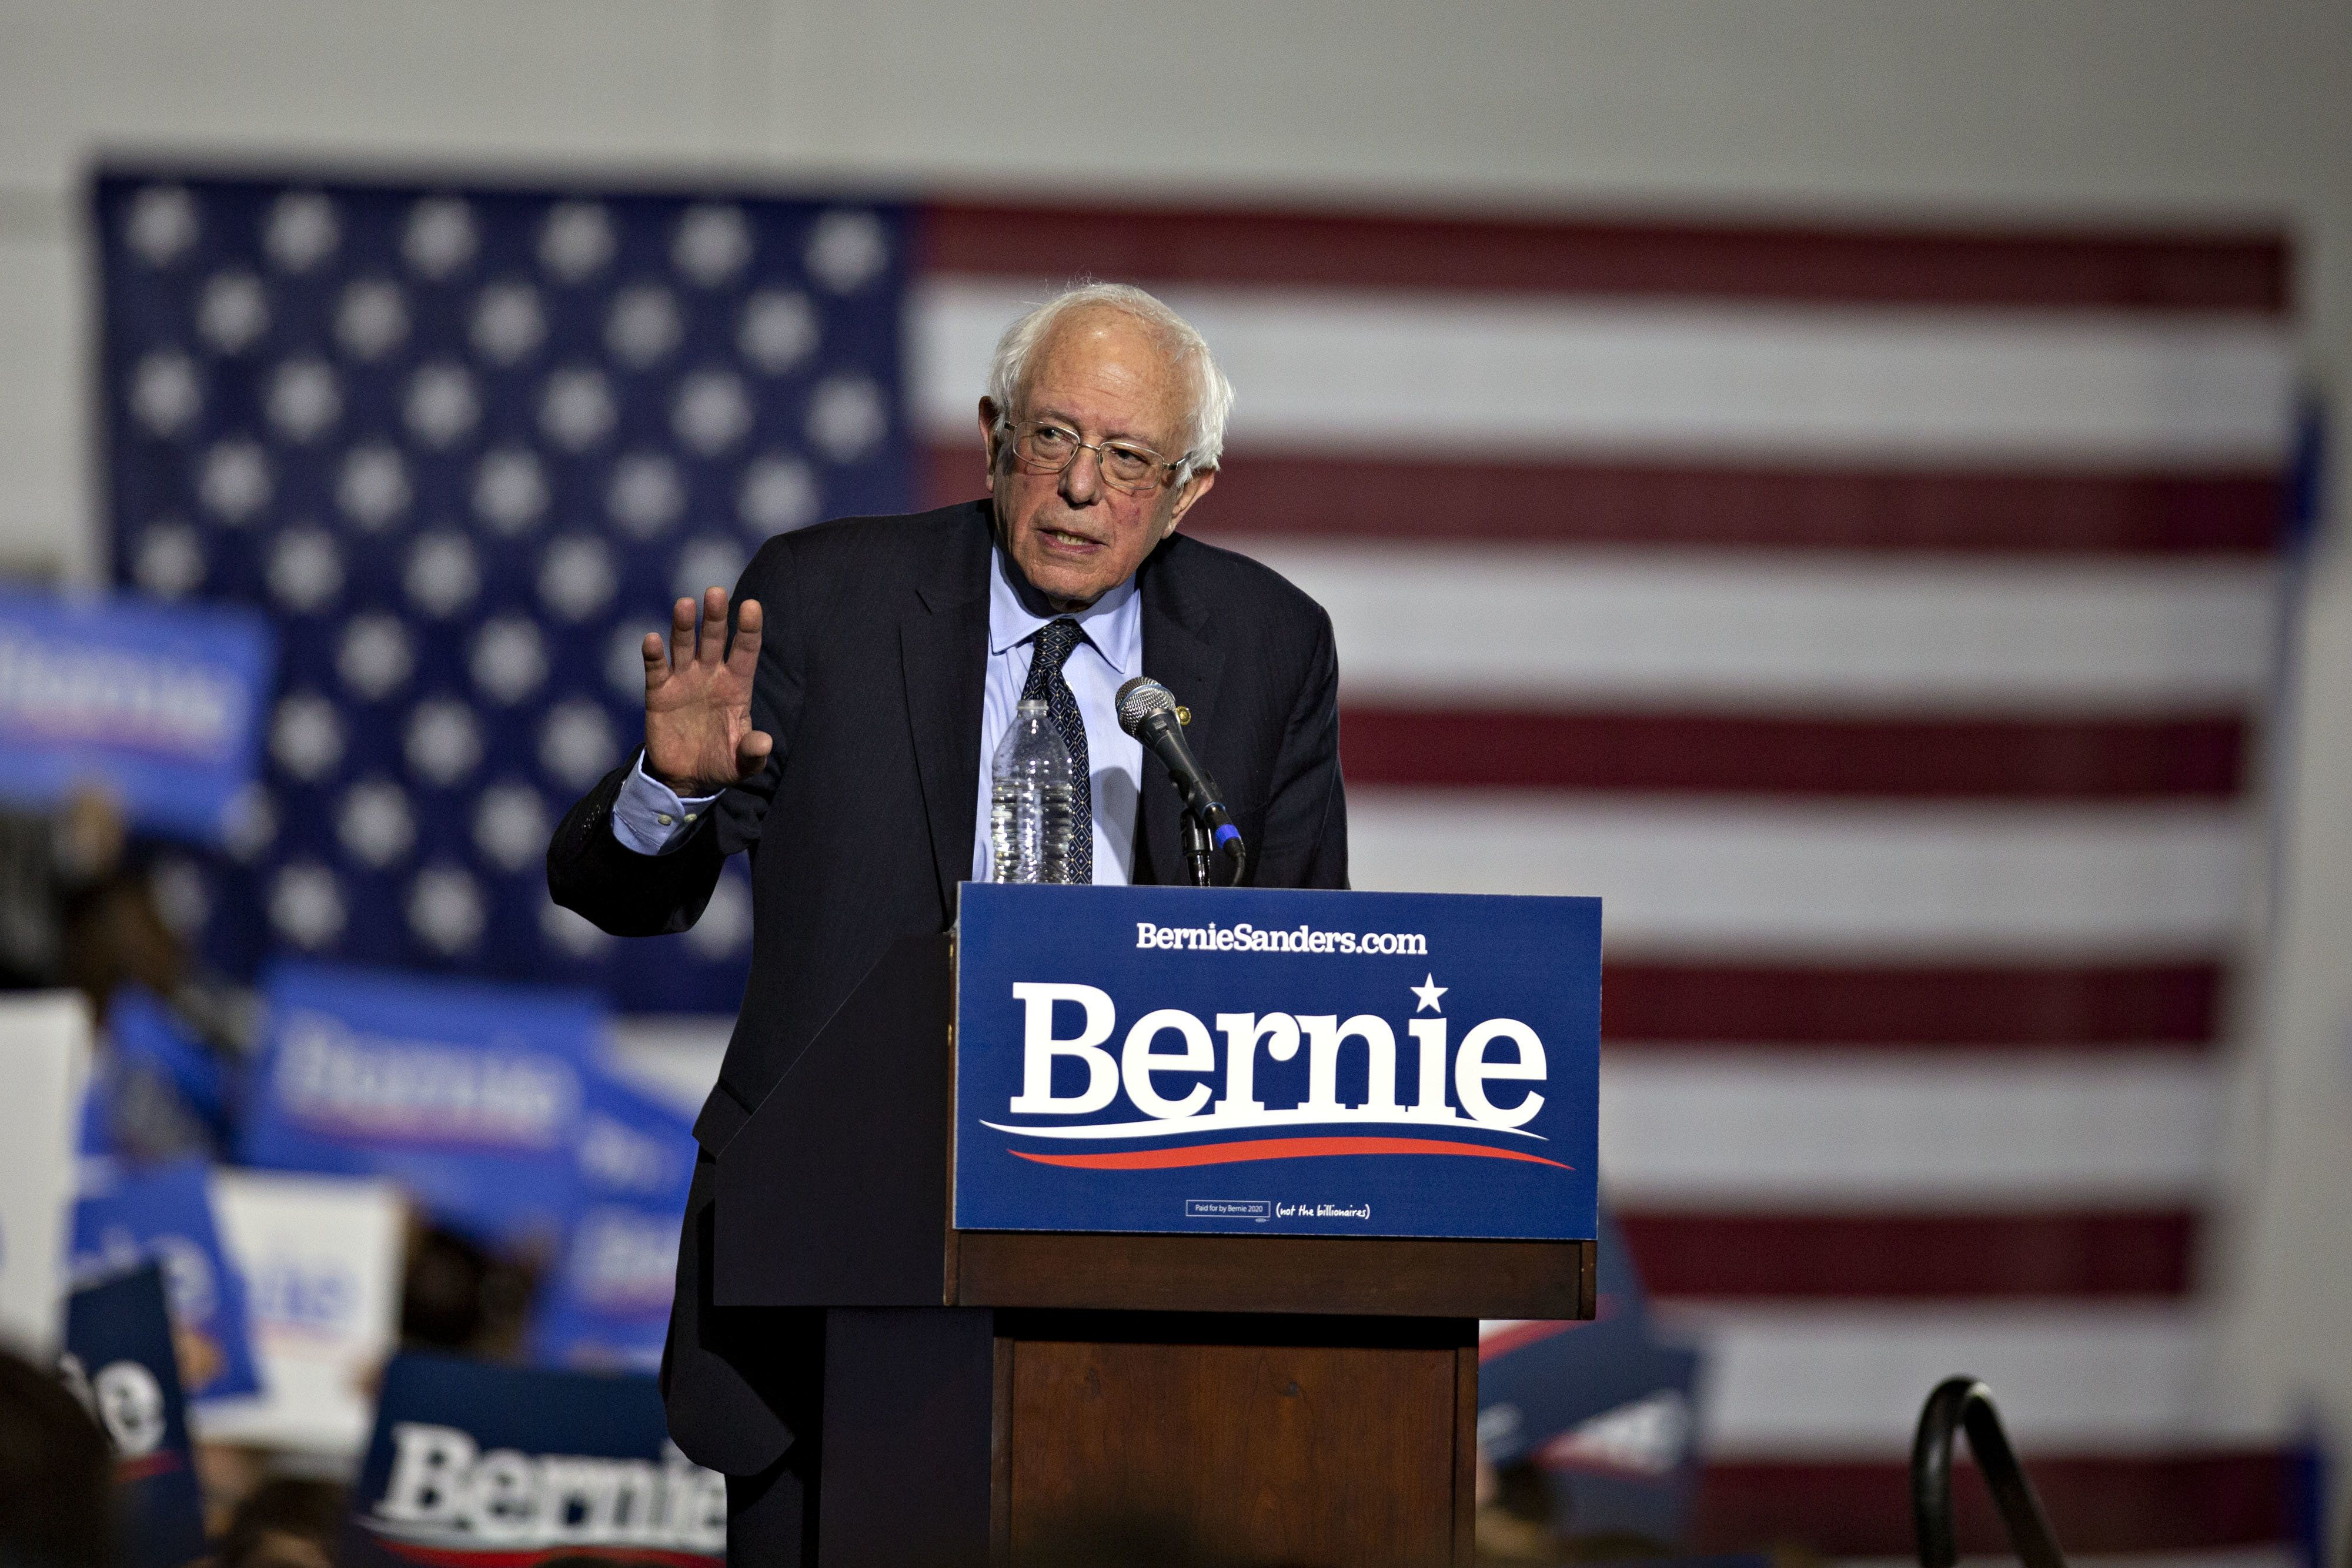 Sen. Bernie Sanders (I-Vt.) at a presidential campaign rally in Chicago on March 3, 2019, where he opened up about his work i